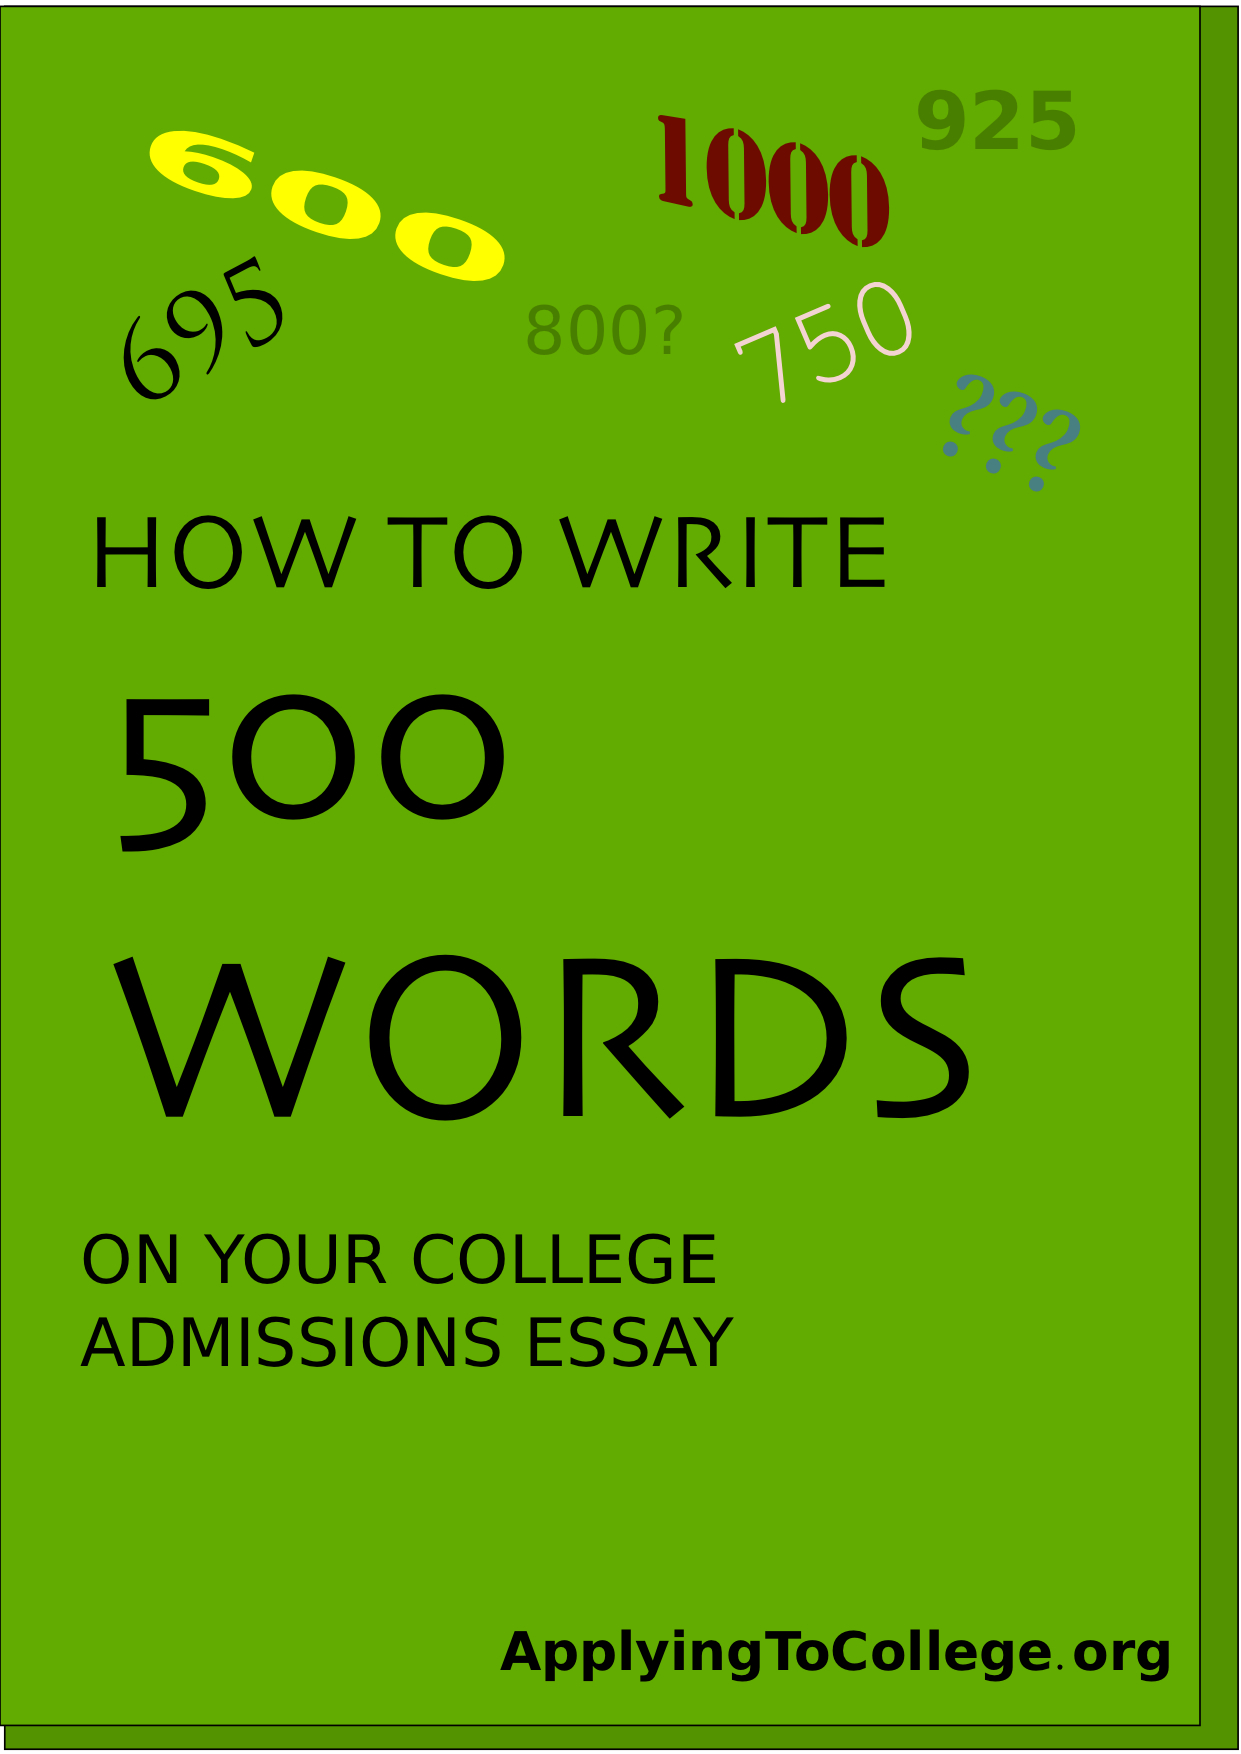 college essay 500 word limit 5 simple ways to pare it down college essay 500 word